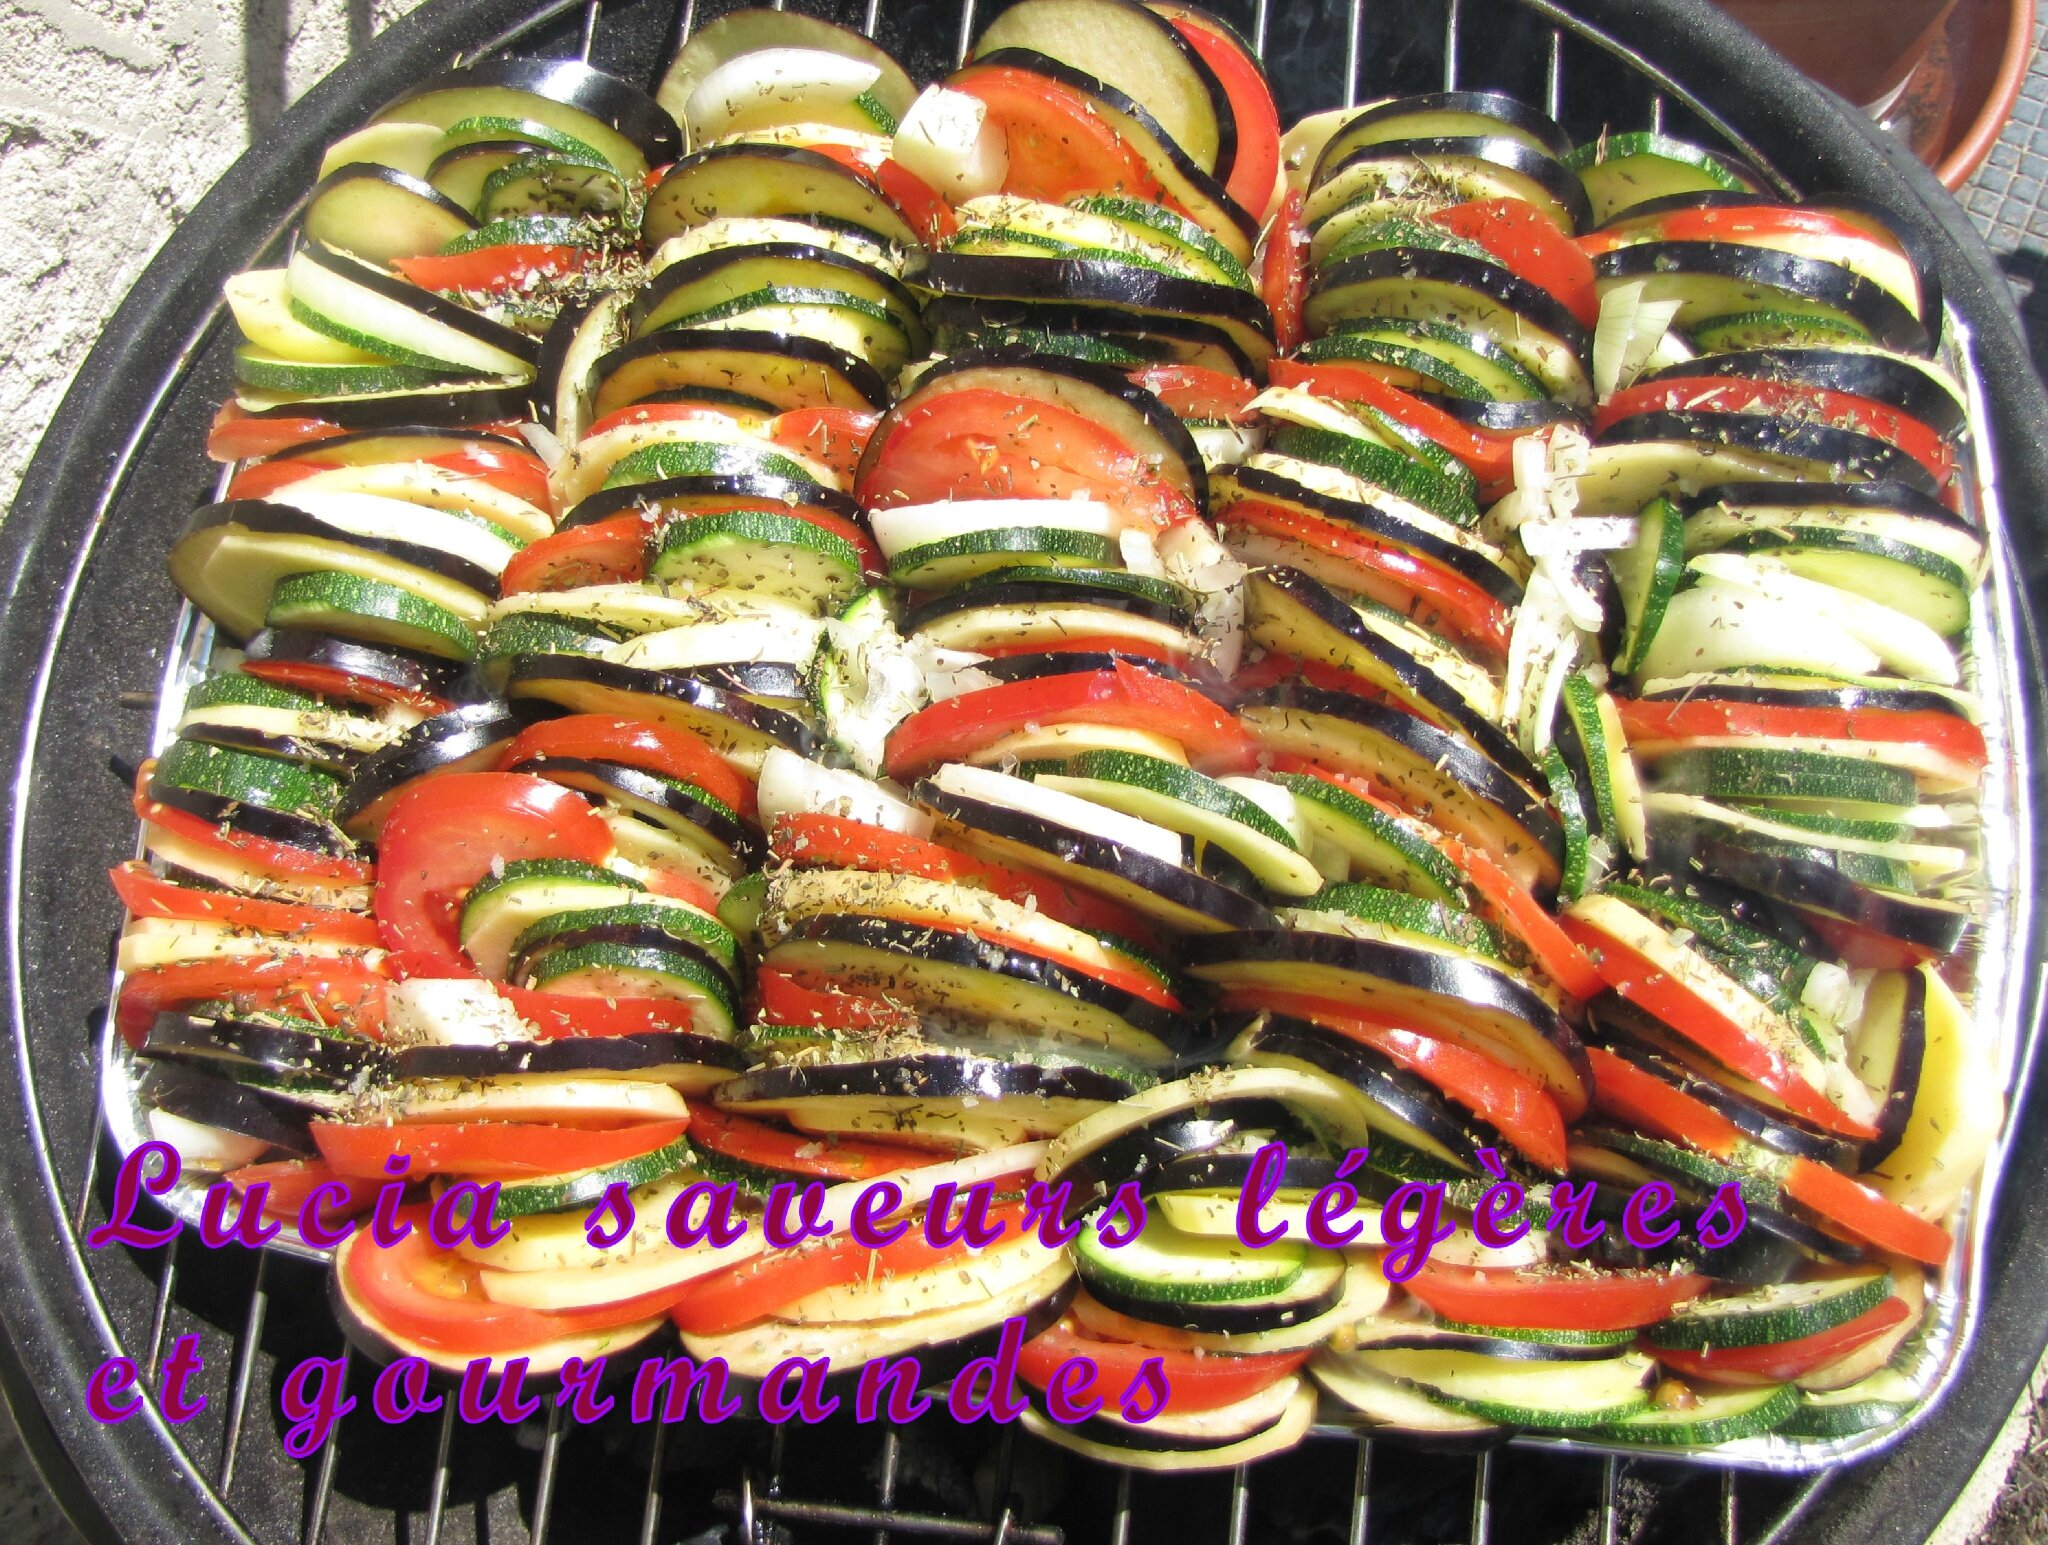 L gumes au barbecue lucia saveurs l g res et gourmandes - Courgettes grillees au barbecue ...